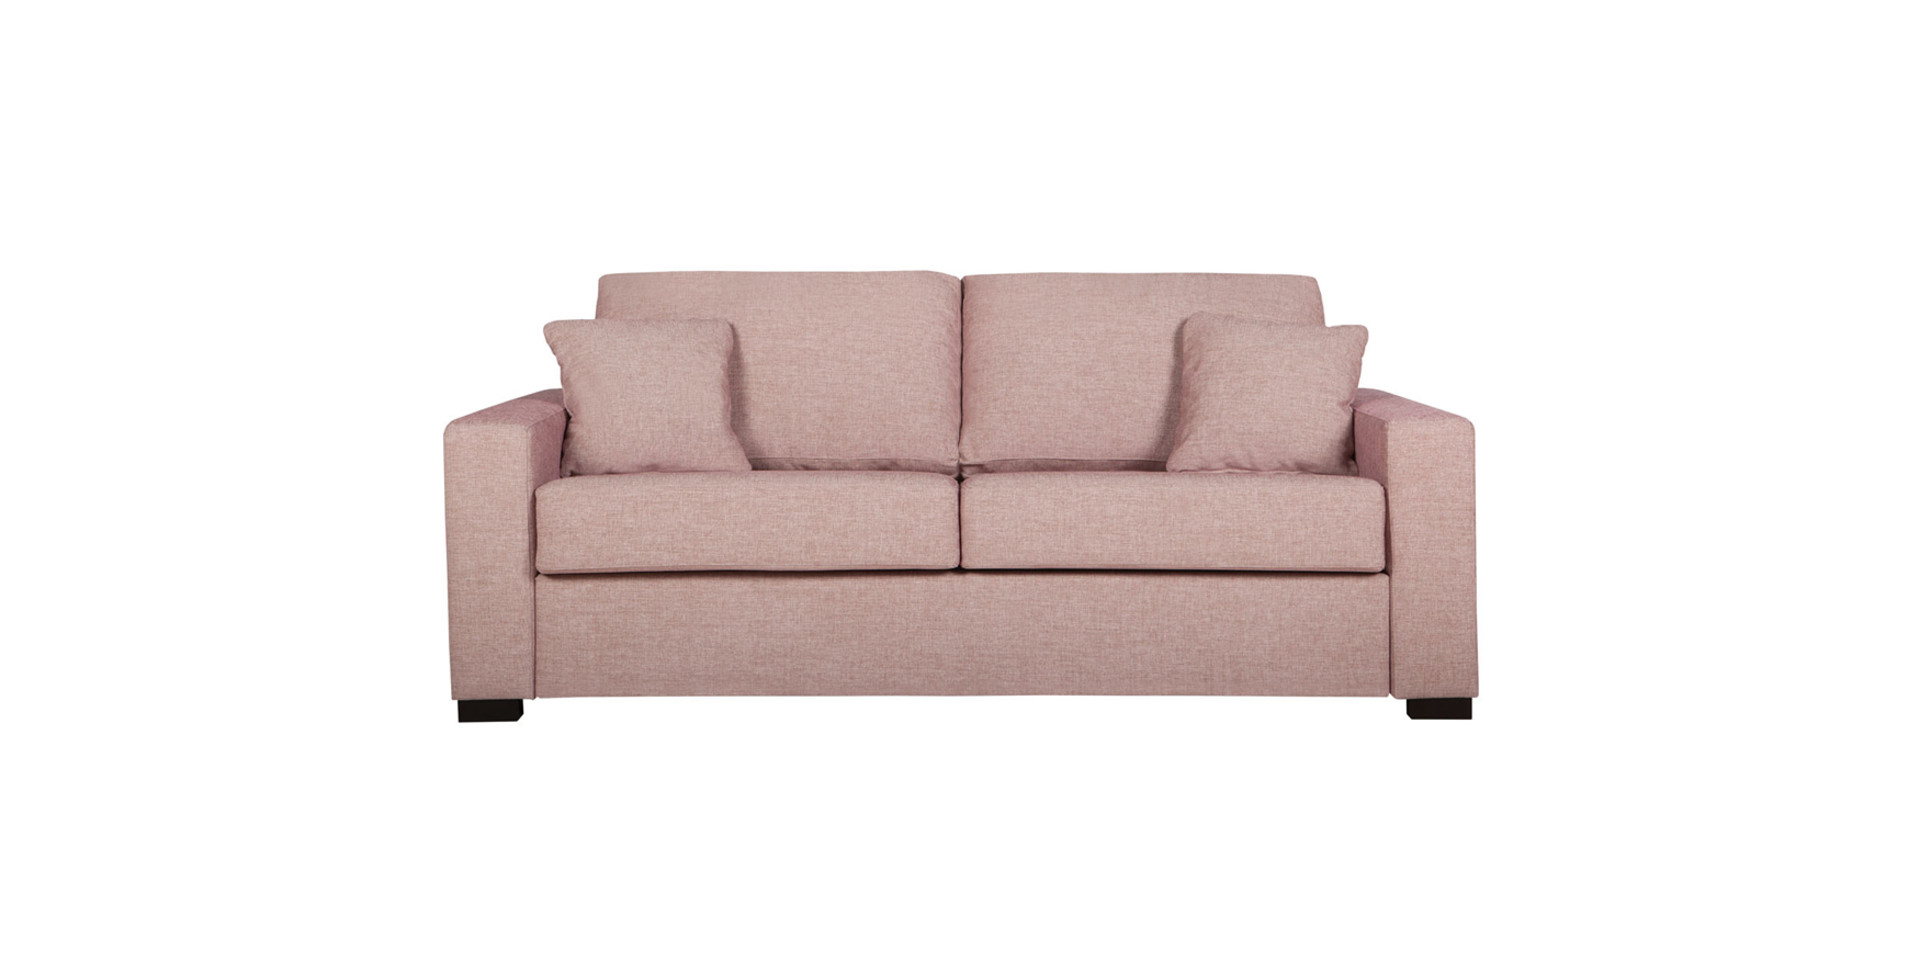 sits-lukas-canape-convertible-sofa_bed3_divine61_pink_1